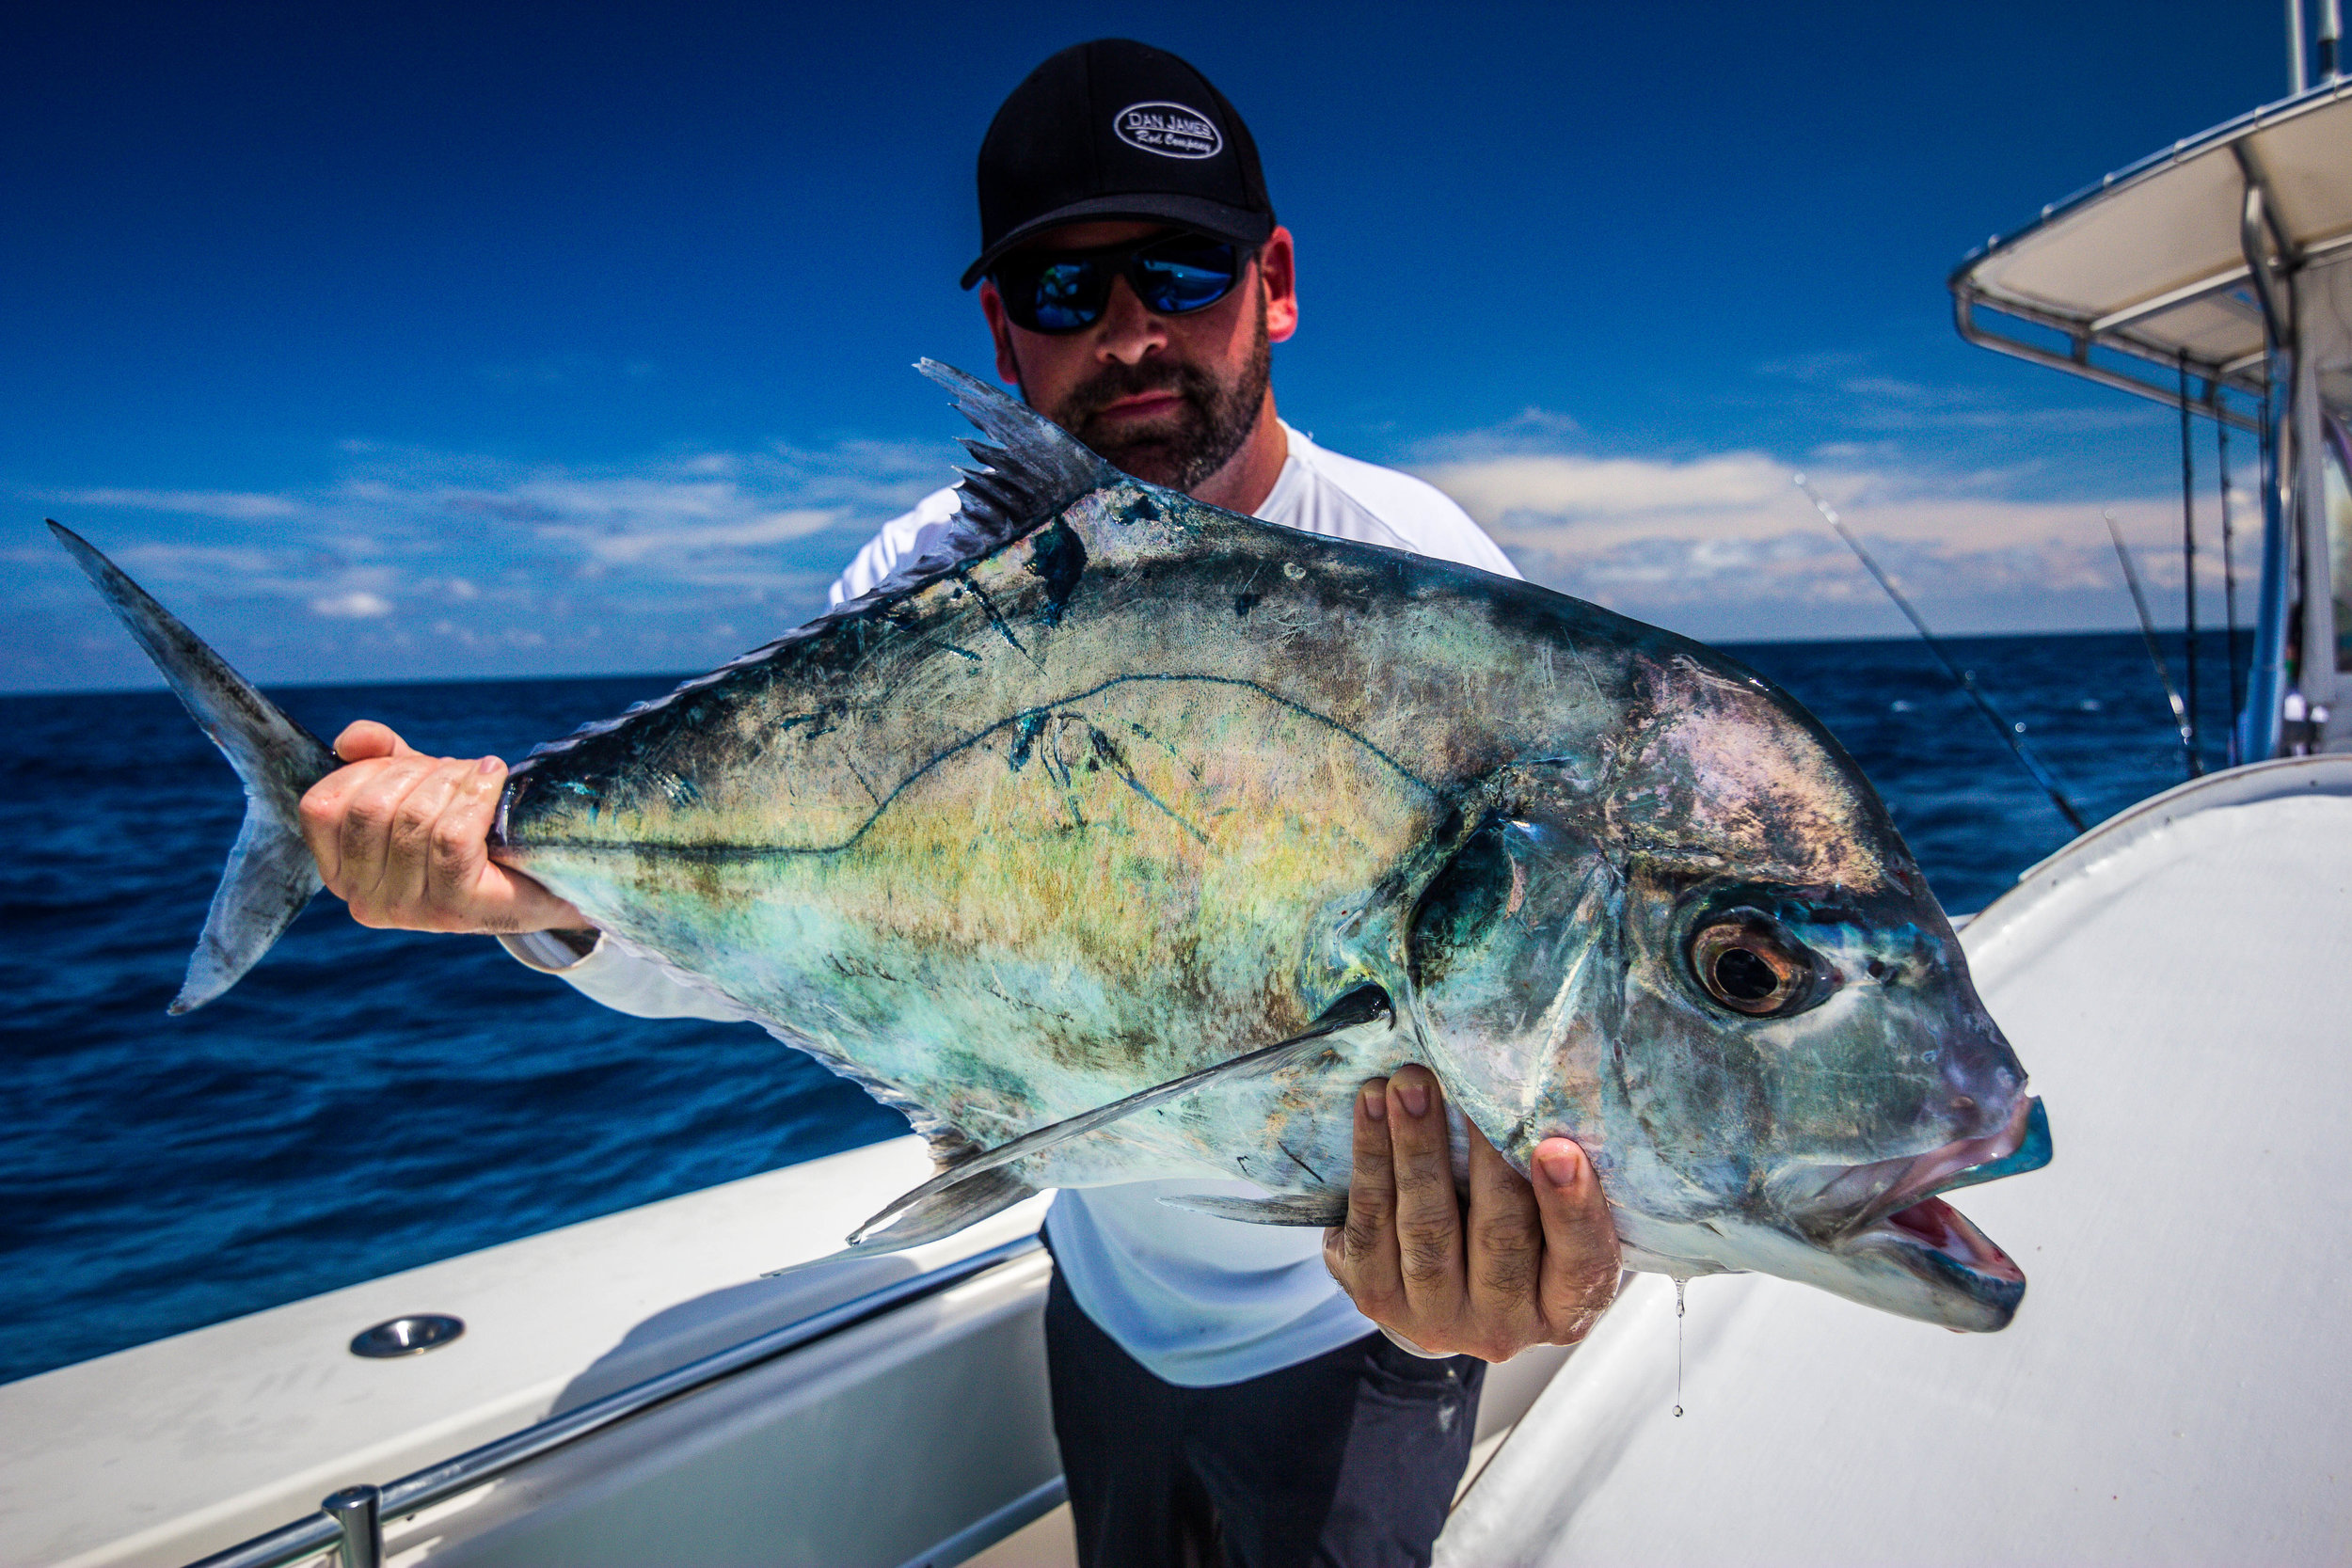 Dan James from Dan James Rod Company holding his African Pompano!